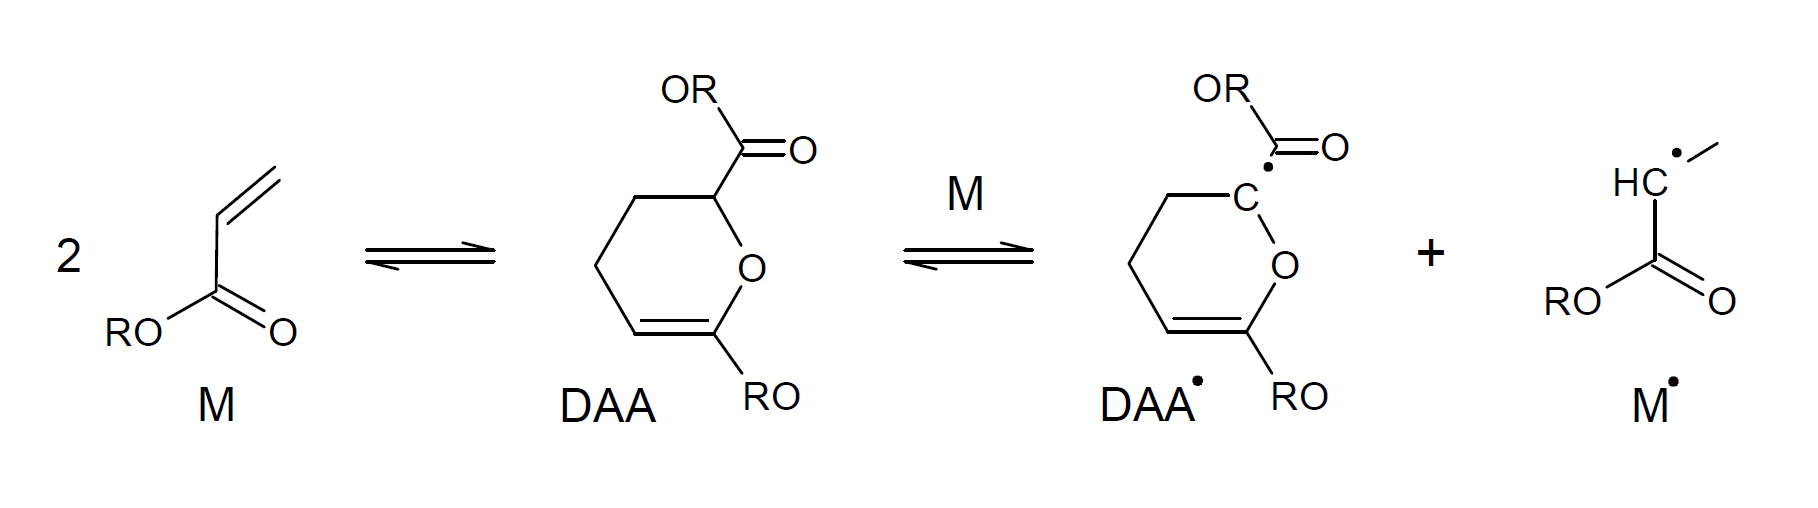 hight resolution of styrene is one of the most versatile monomers it can be polymerized using many different techniques including free radical cationic and anionic